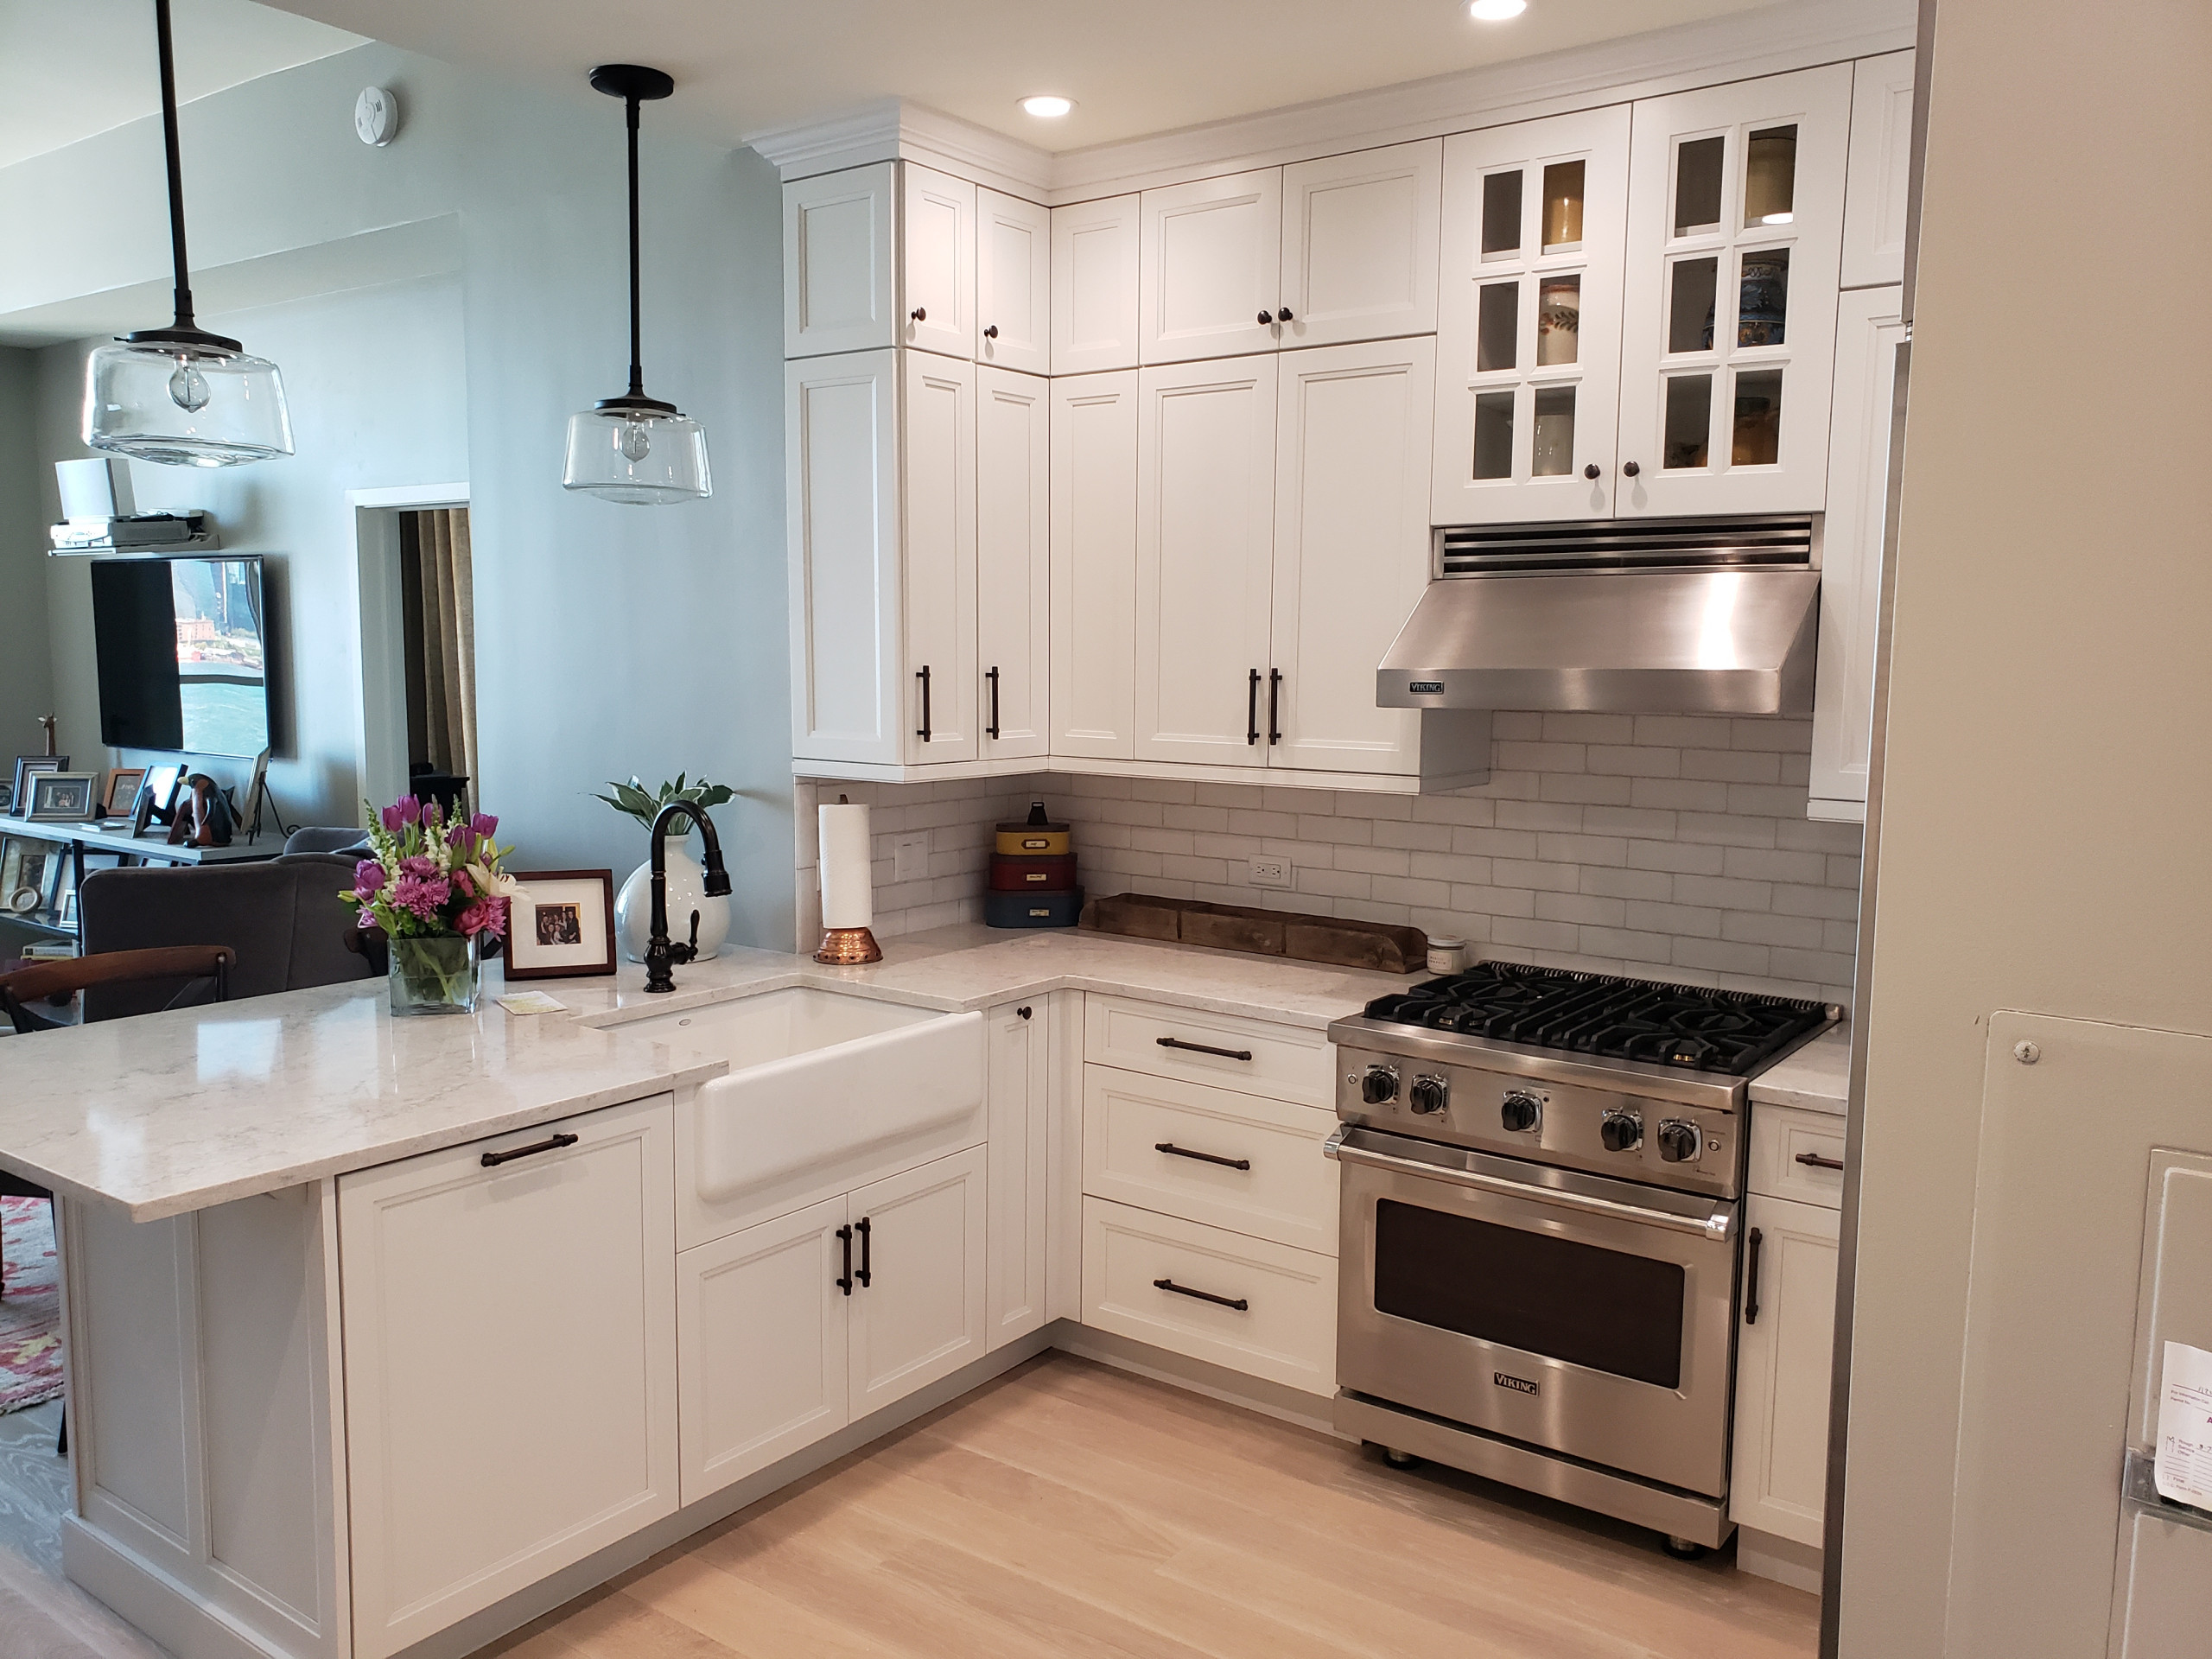 Maxwell Place Kitchen Remodel - Hoboken